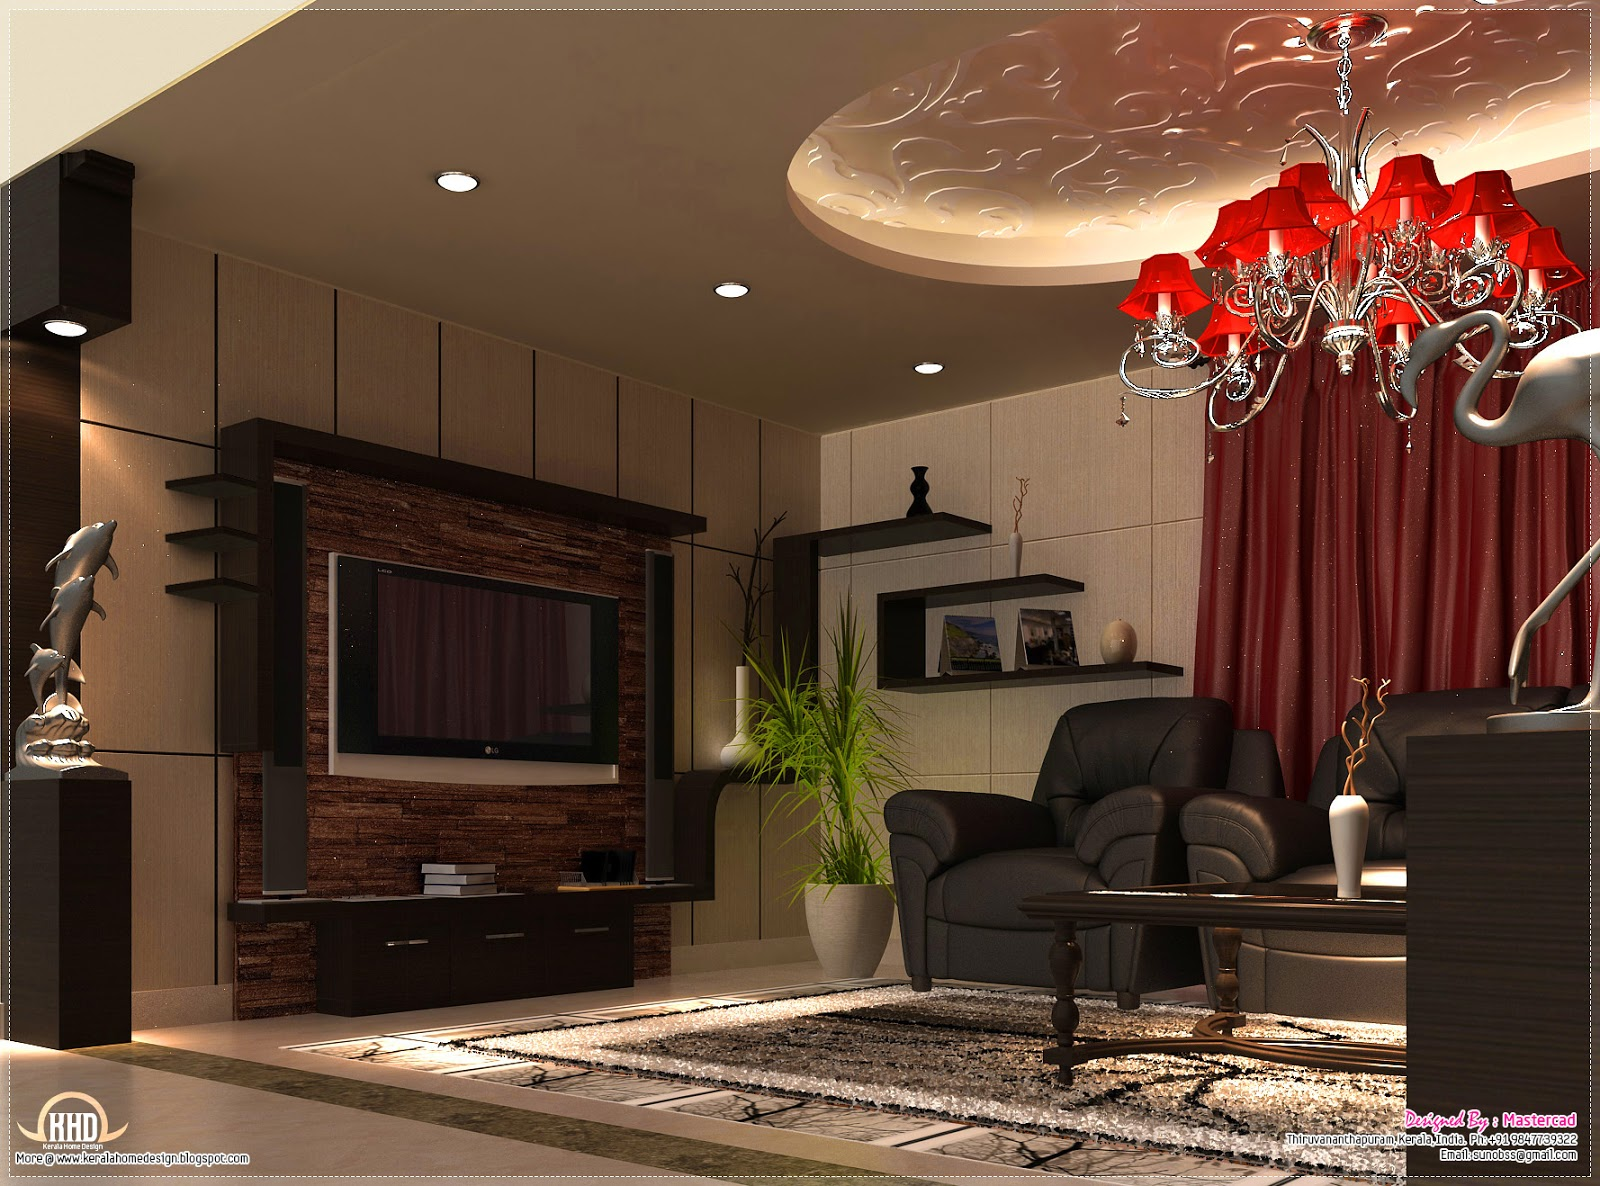 Interior design ideas living room kerala style living room ideas